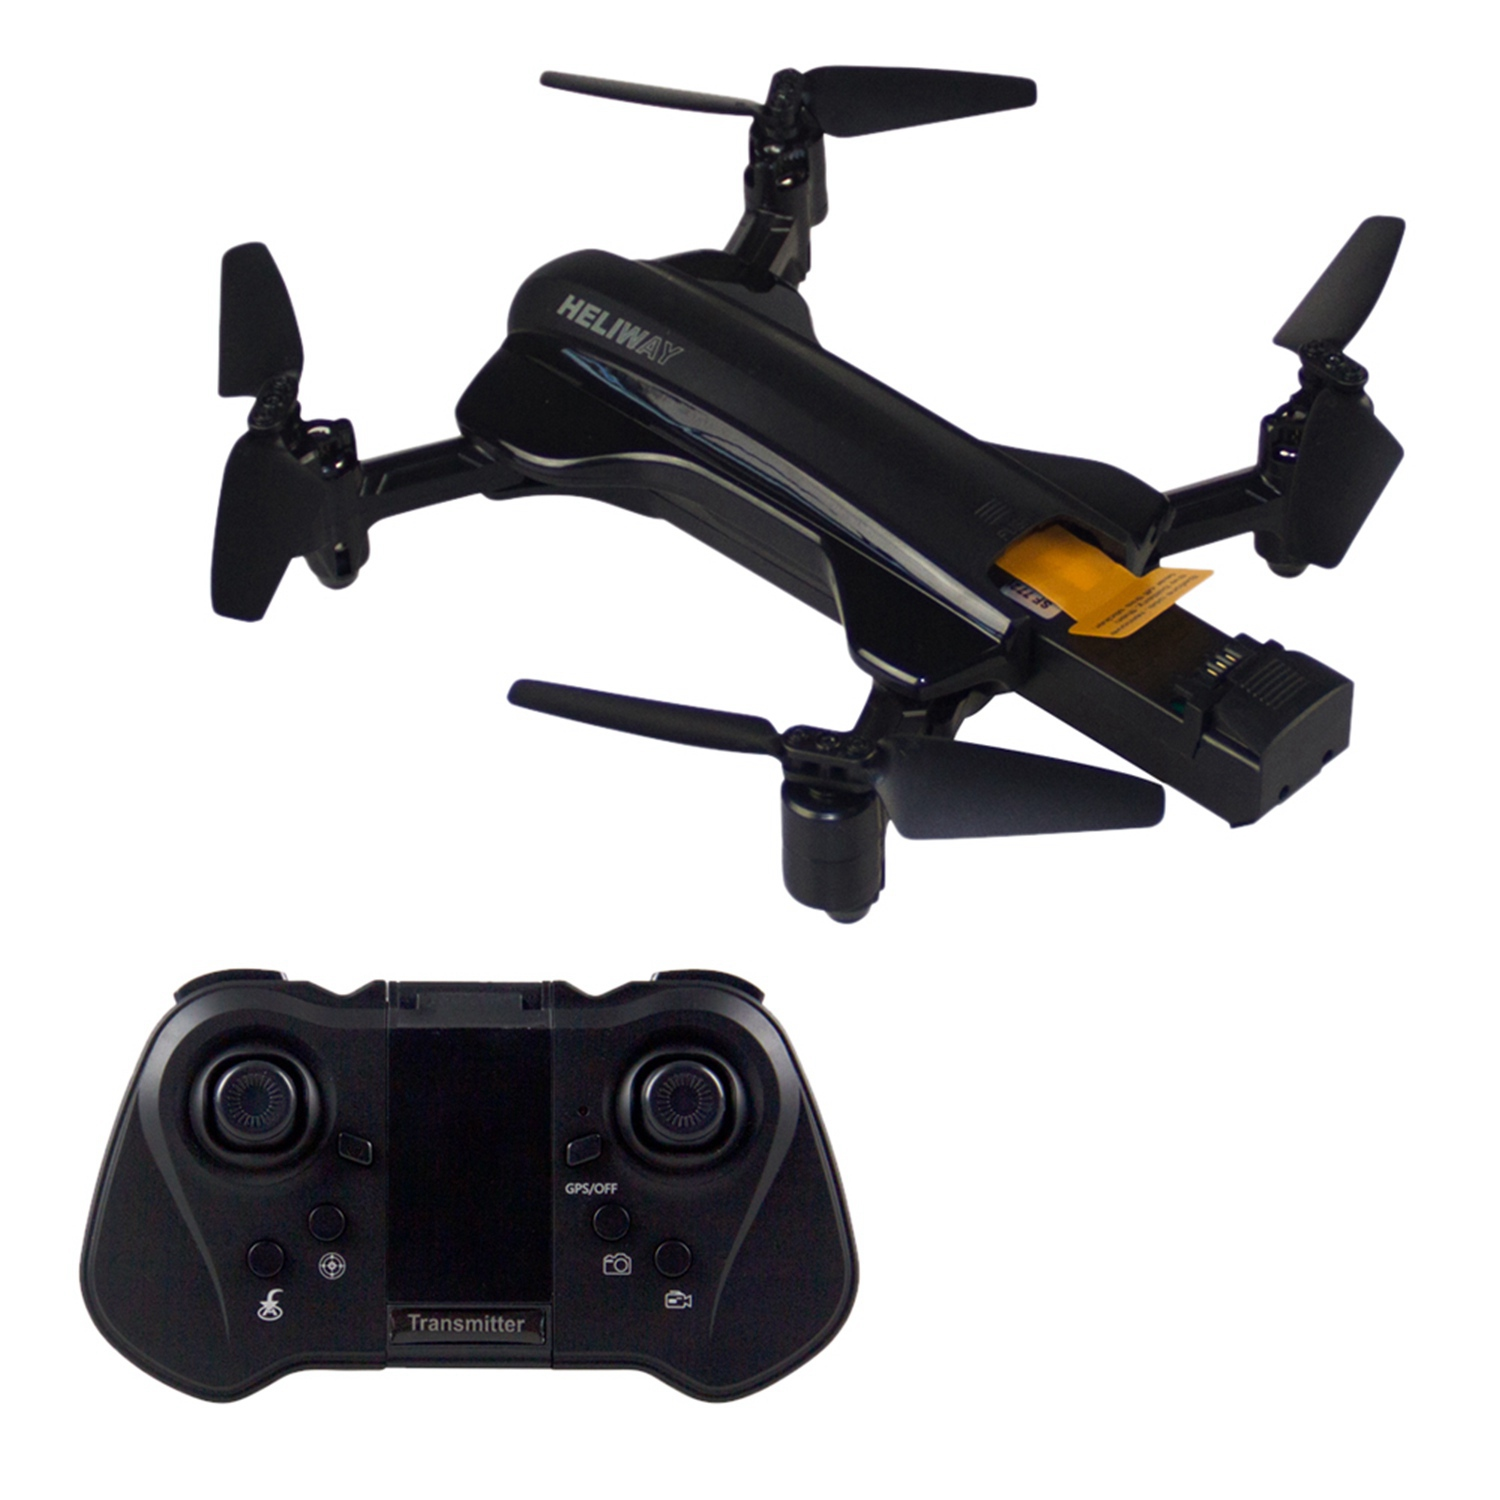 Foldable Drone 2.4Ghz 6-Axis Gyroscope 4-Channel Wifi 1080P Hd Camera Auto Hover HeightFoldable Drone 2.4Ghz 6-Axis Gyroscope 4-Channel Wifi 1080P Hd Camera Auto Hover Height